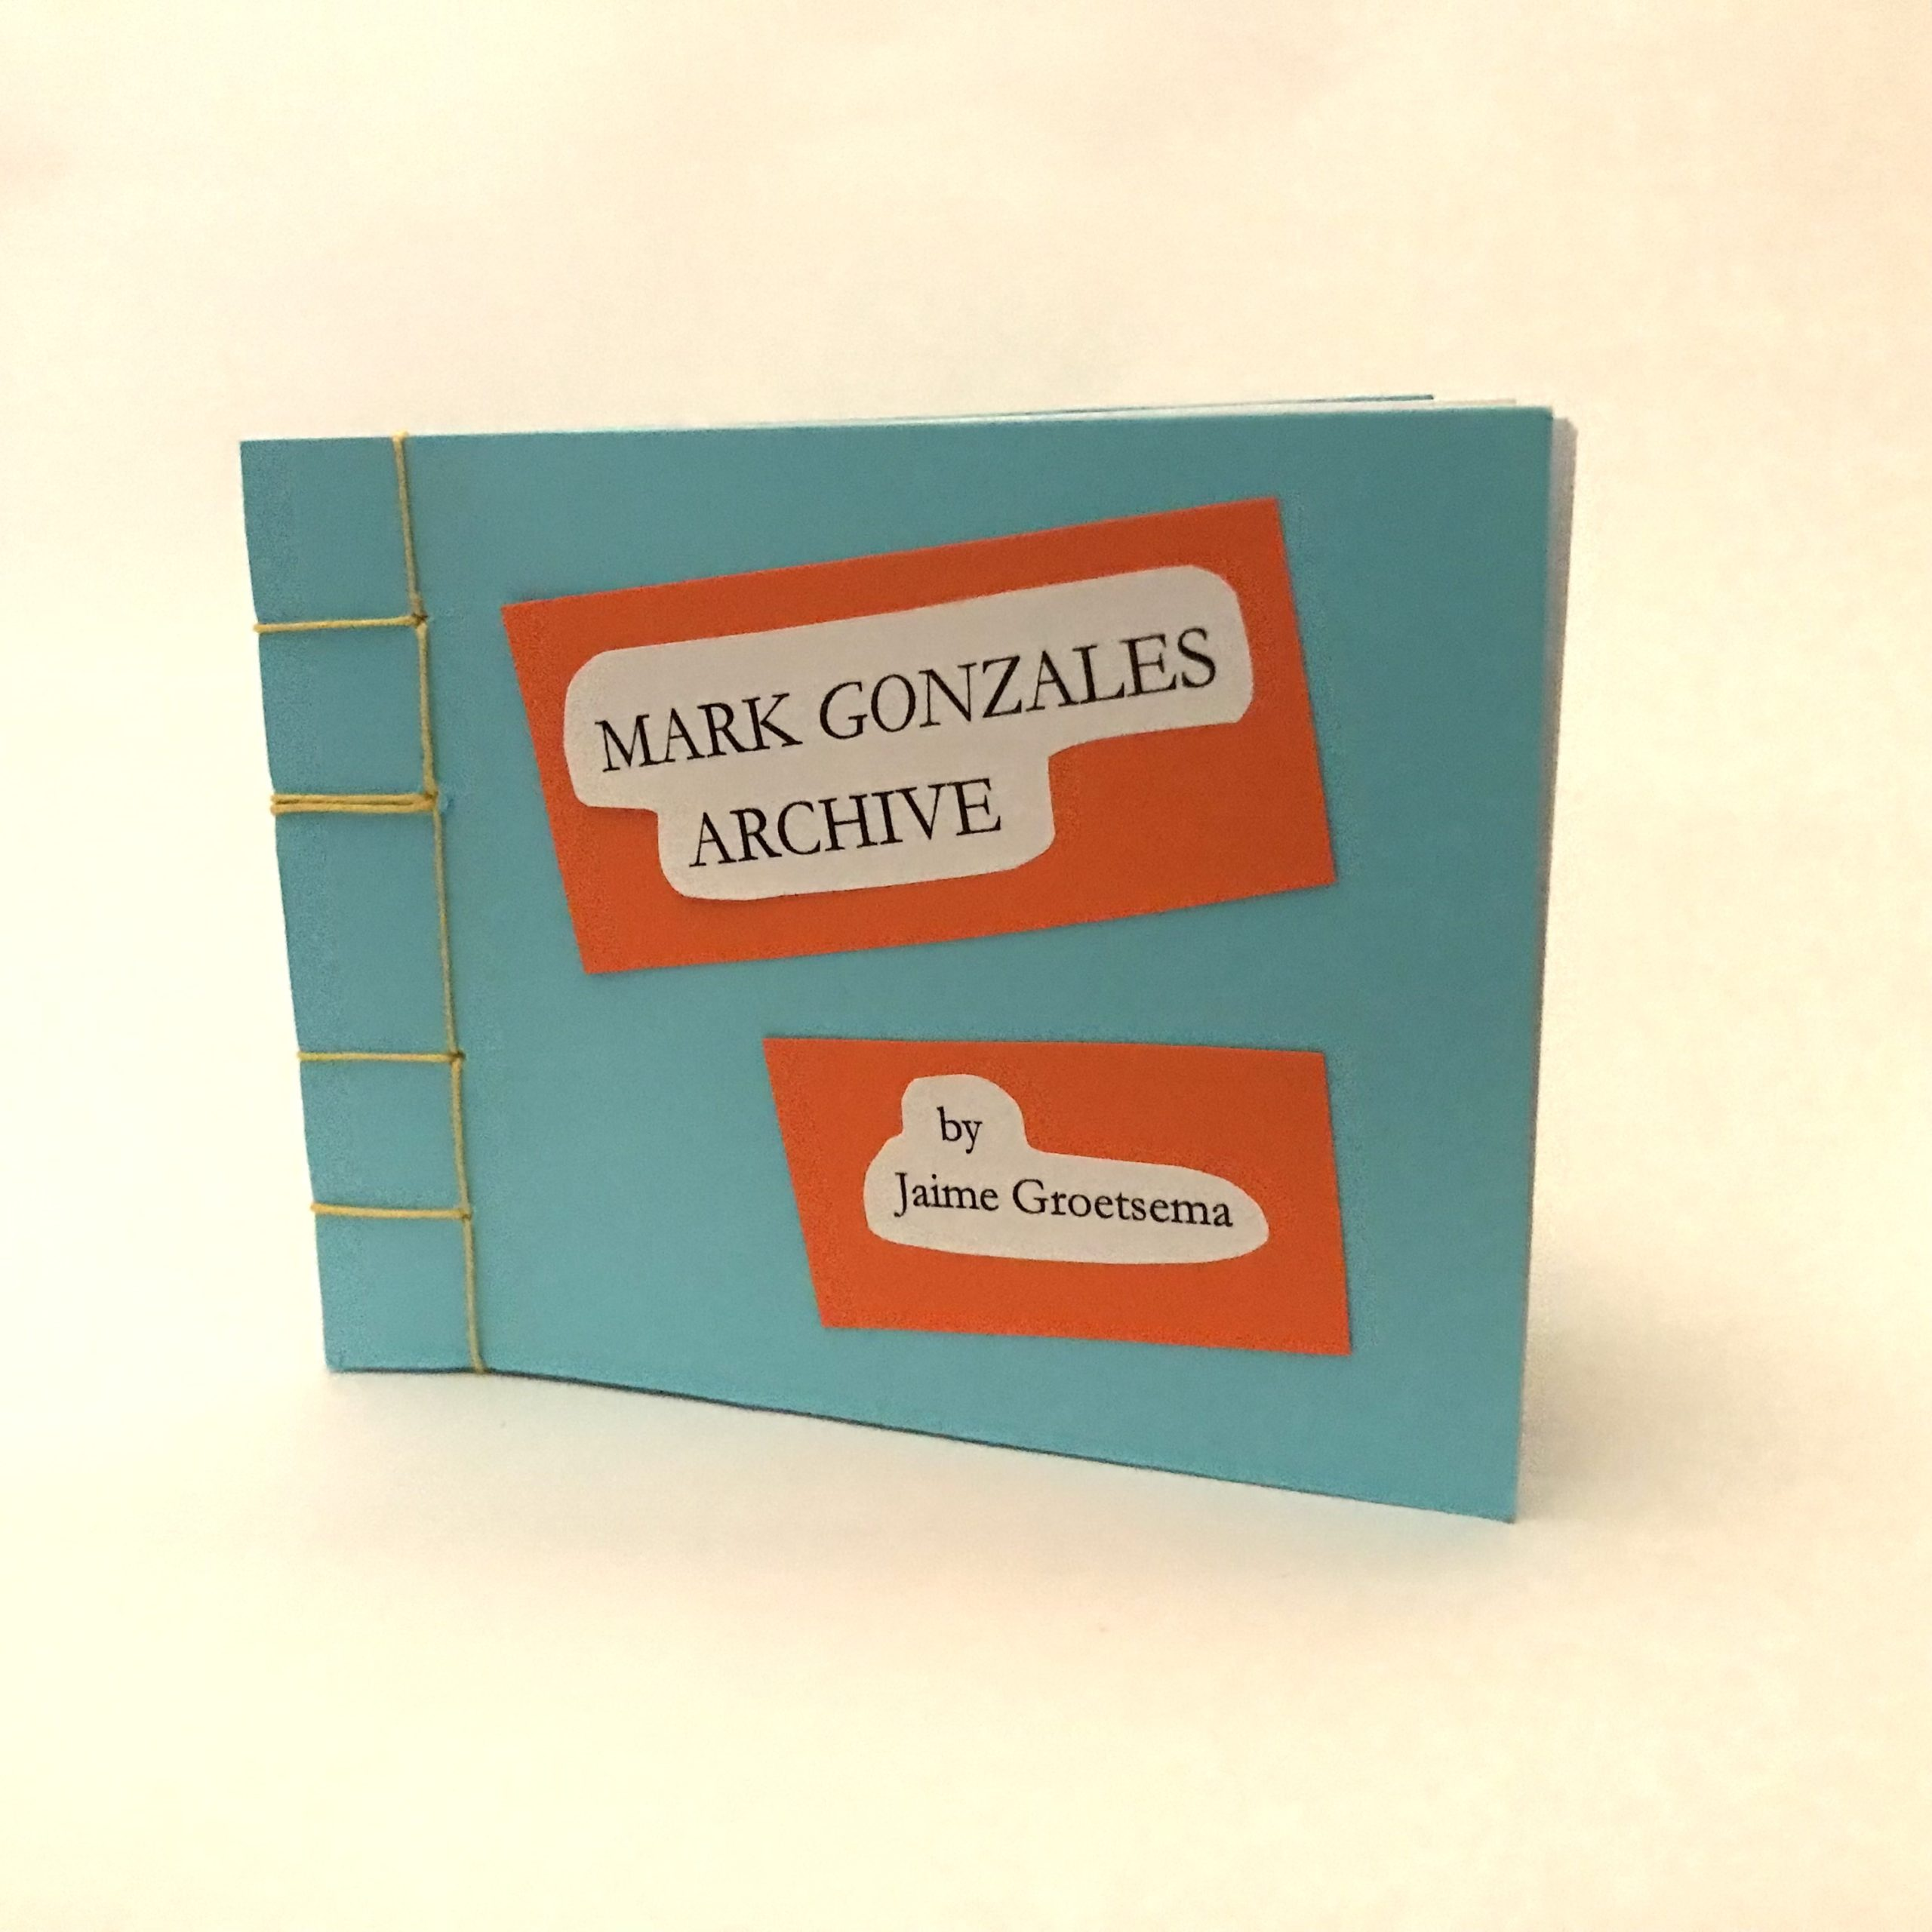 Artists' book standing upright on white background. Artists' book is rectangular with sky blue cover. Book is bound by yellow linen thread on one side in a stab-stitch style. Two rectangular labels are adhered to the cover. The labels are white, surrounded by an orange boarder. The label nearest the top of the cover reads: Mark Gonzales Archive; the label near the bottom of the cover reads: by: Jaime Groetsema.